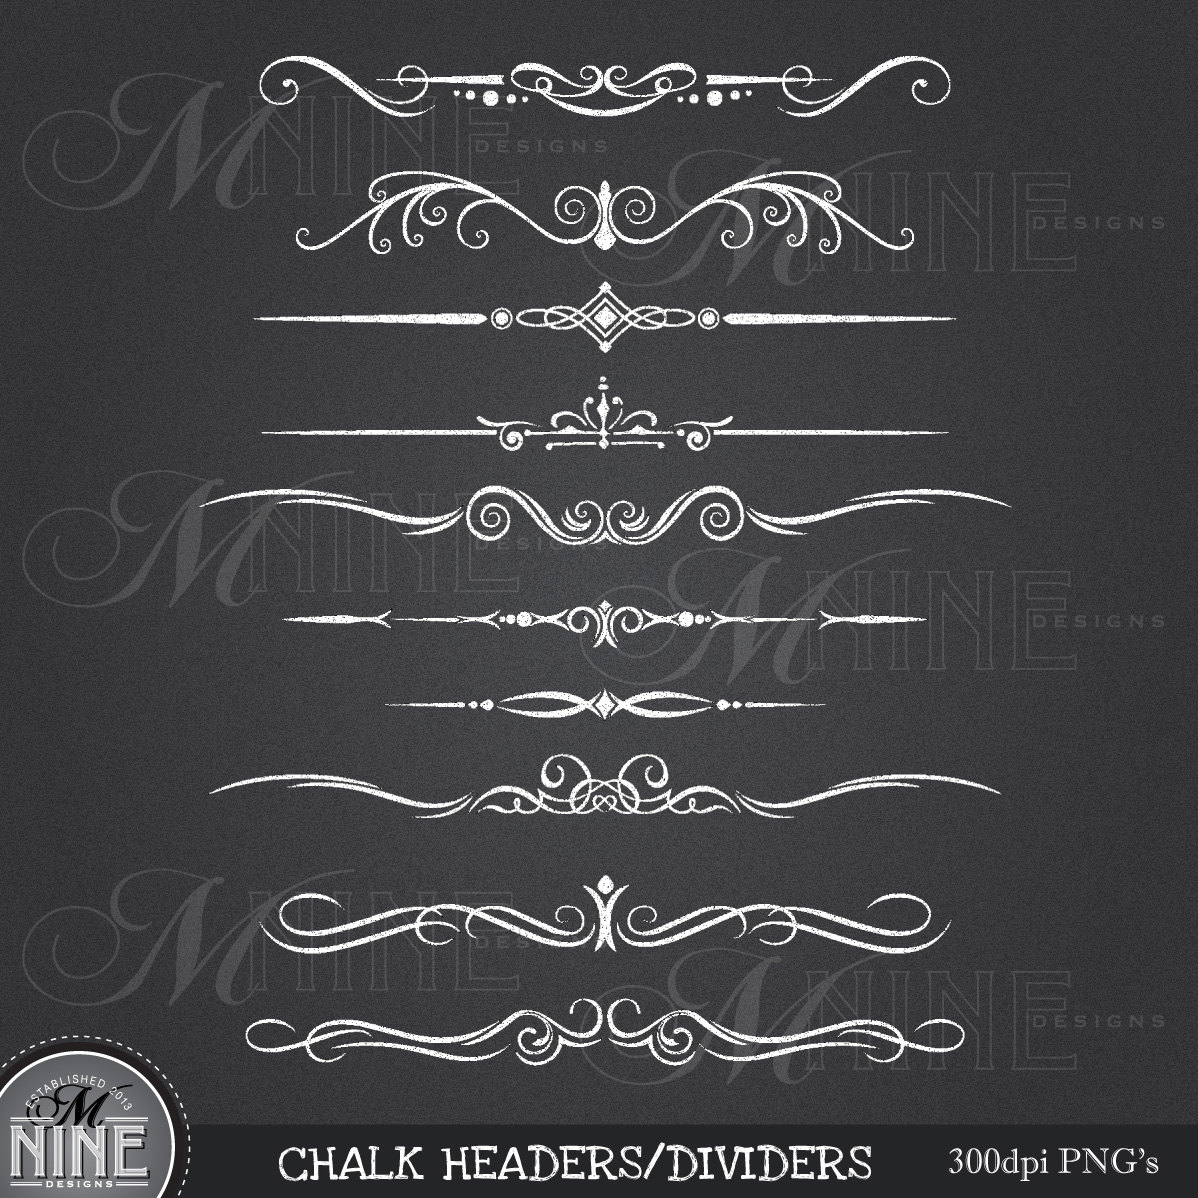 Chalk borders incep imagine. Chalkboard clipart boarder